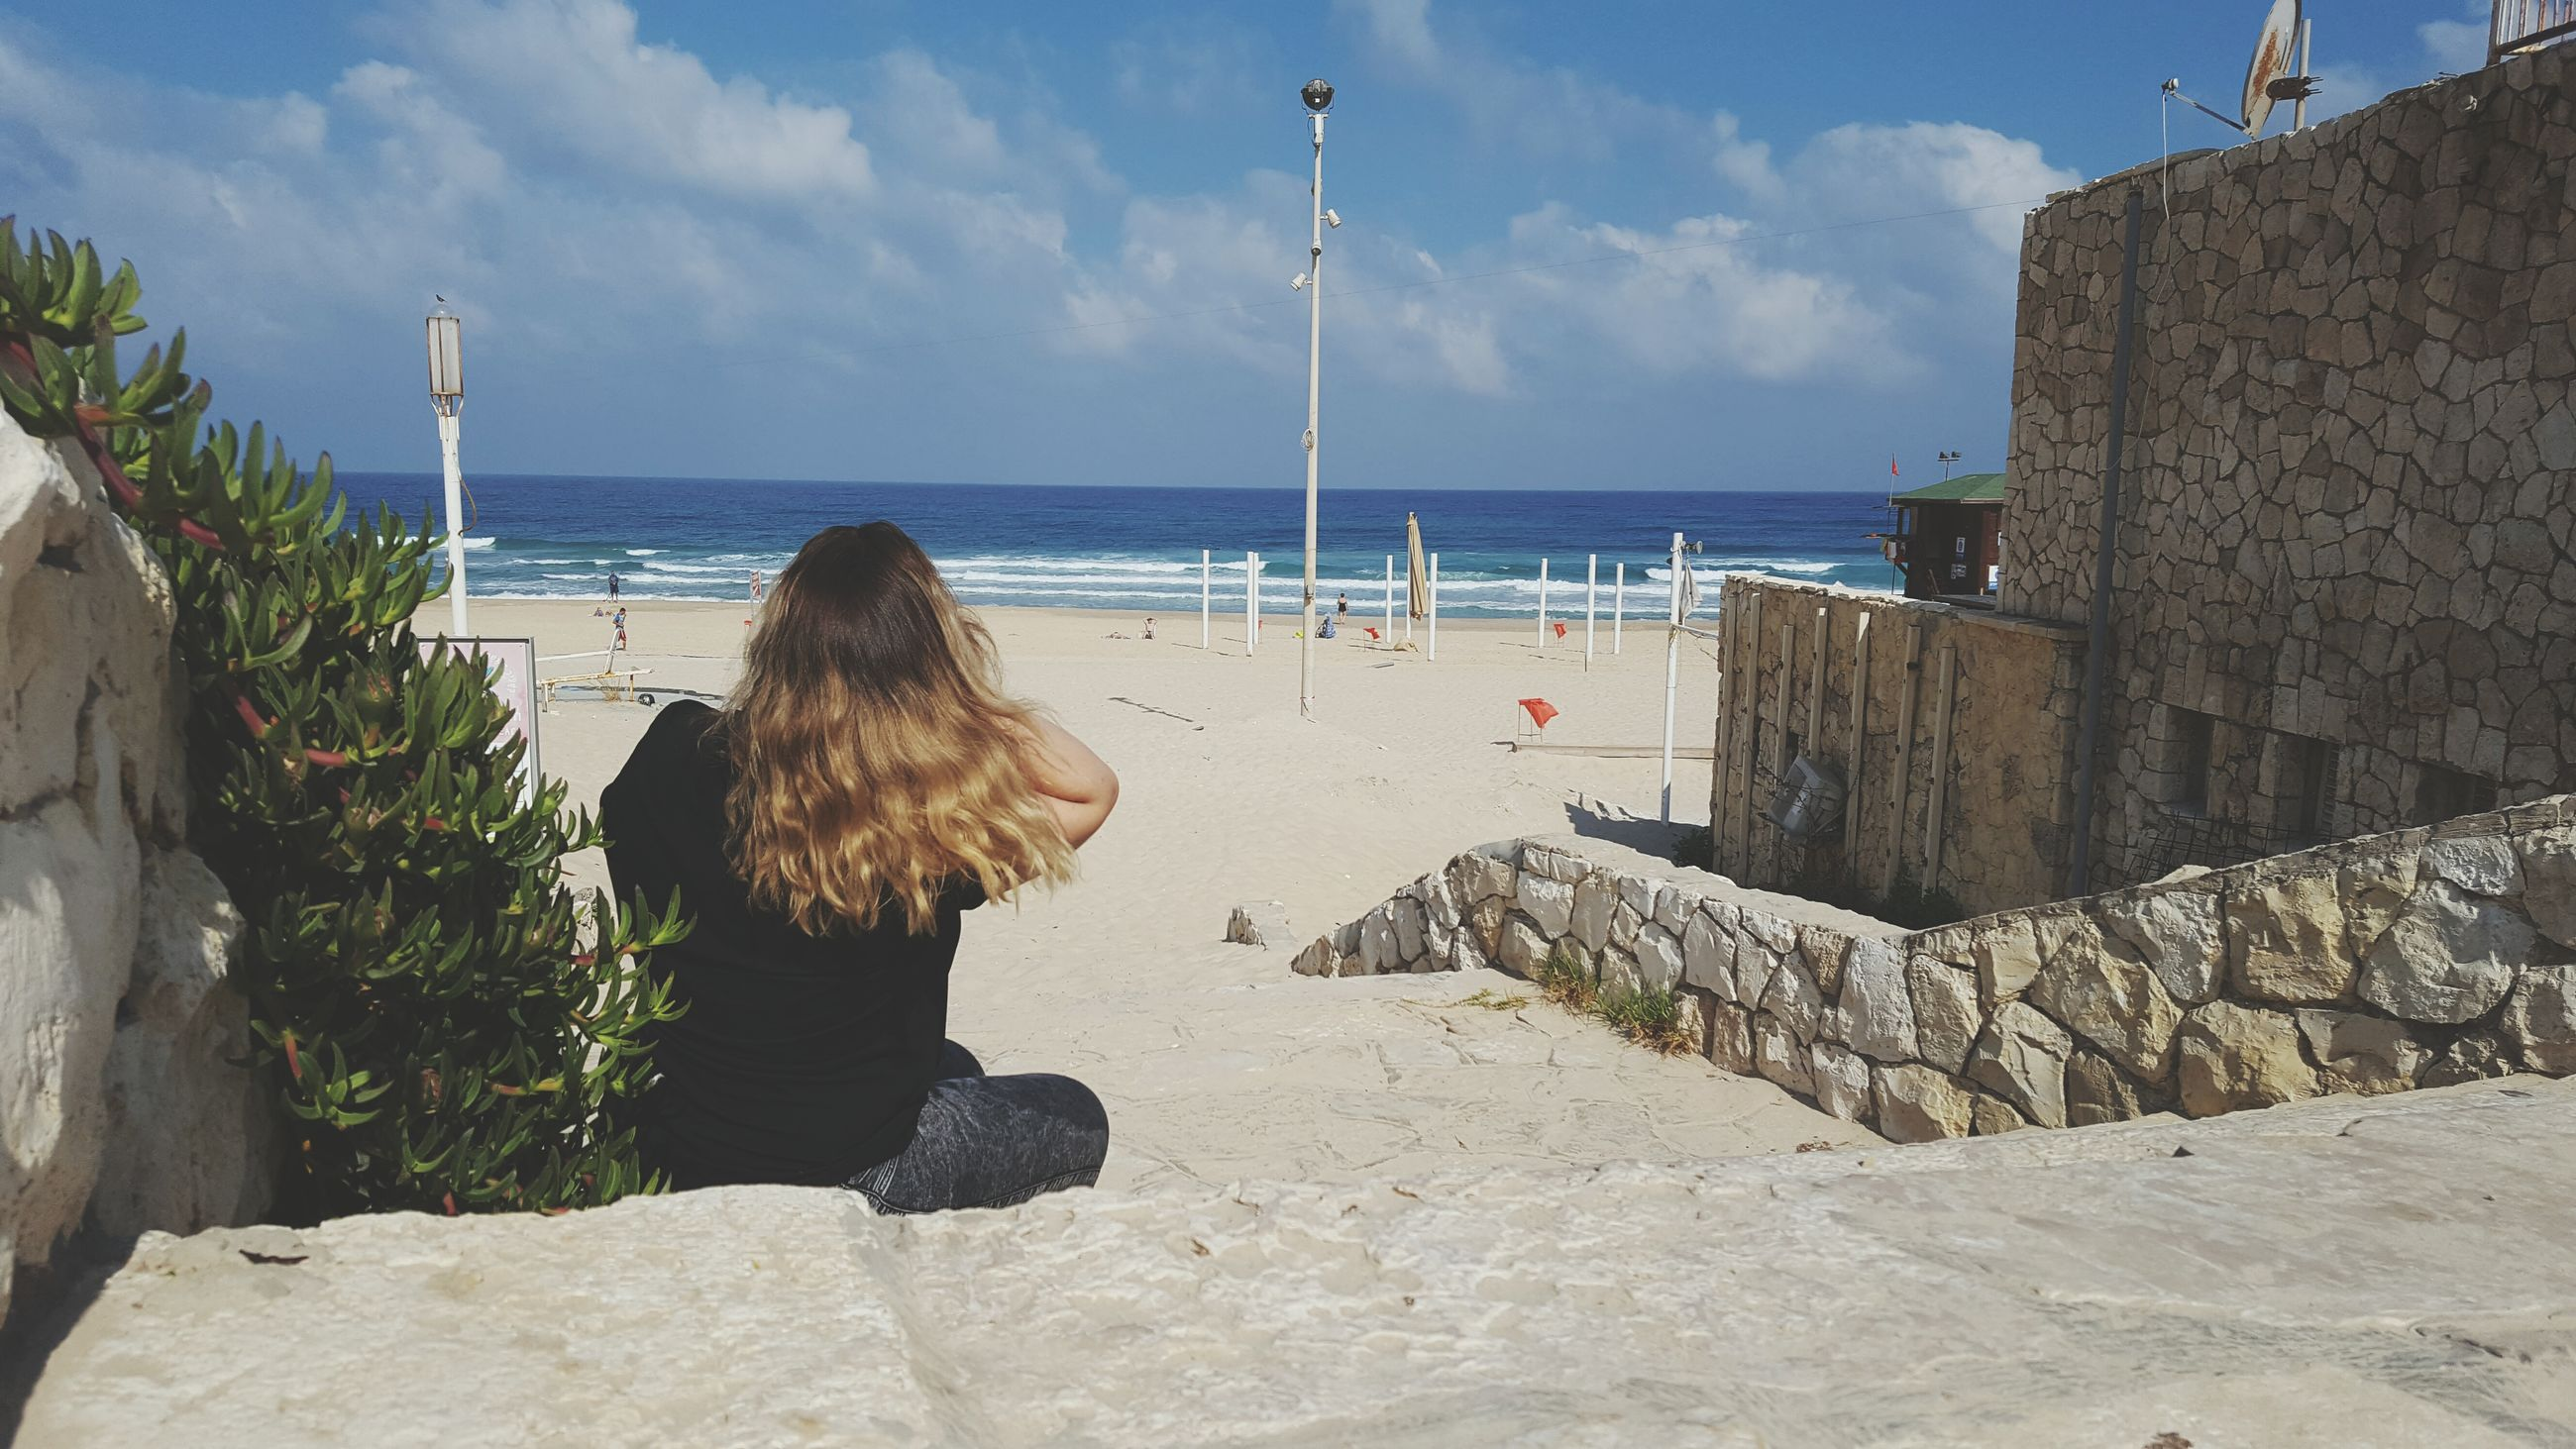 sea, rear view, real people, one person, water, sky, cloud - sky, architecture, horizon over water, built structure, retaining wall, women, building exterior, day, leisure activity, nature, rock - object, outdoors, lifestyles, full length, beach, sitting, beauty in nature, standing, scenics, people